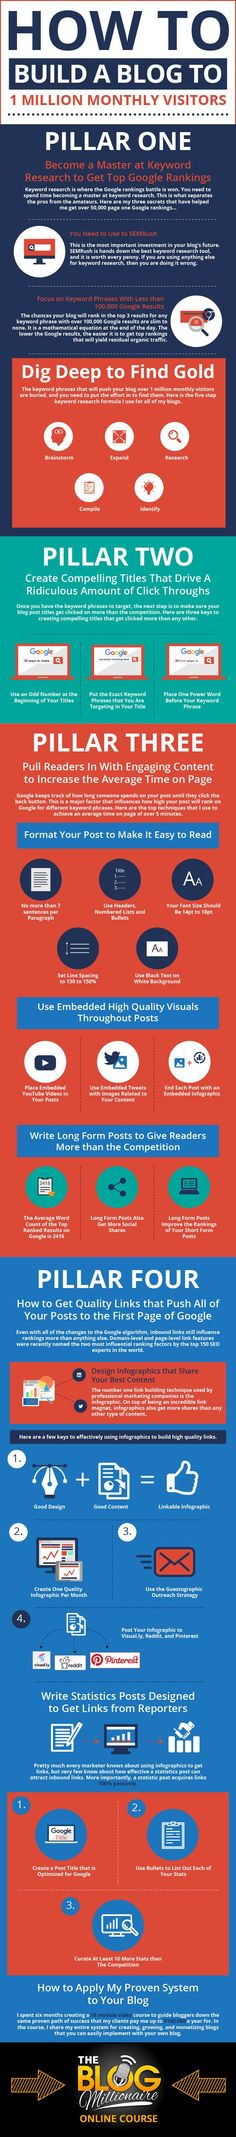 How to Build Your Blog to 1 Million Monthly Visitors - #Infographic / Digital Information World